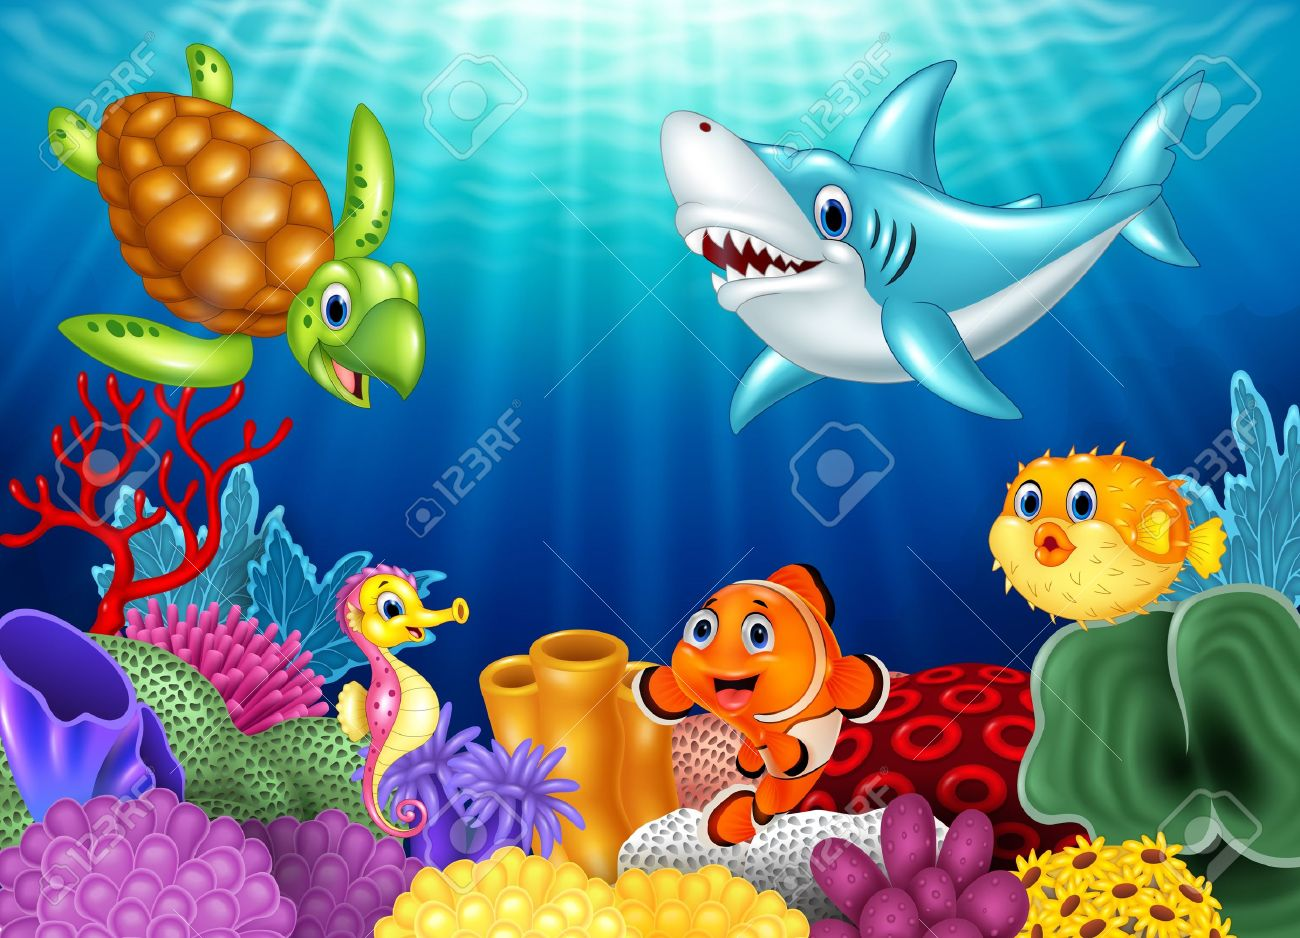 Vector illustration of Cartoon tropical fish and beautiful underwater world with corals - 54568310